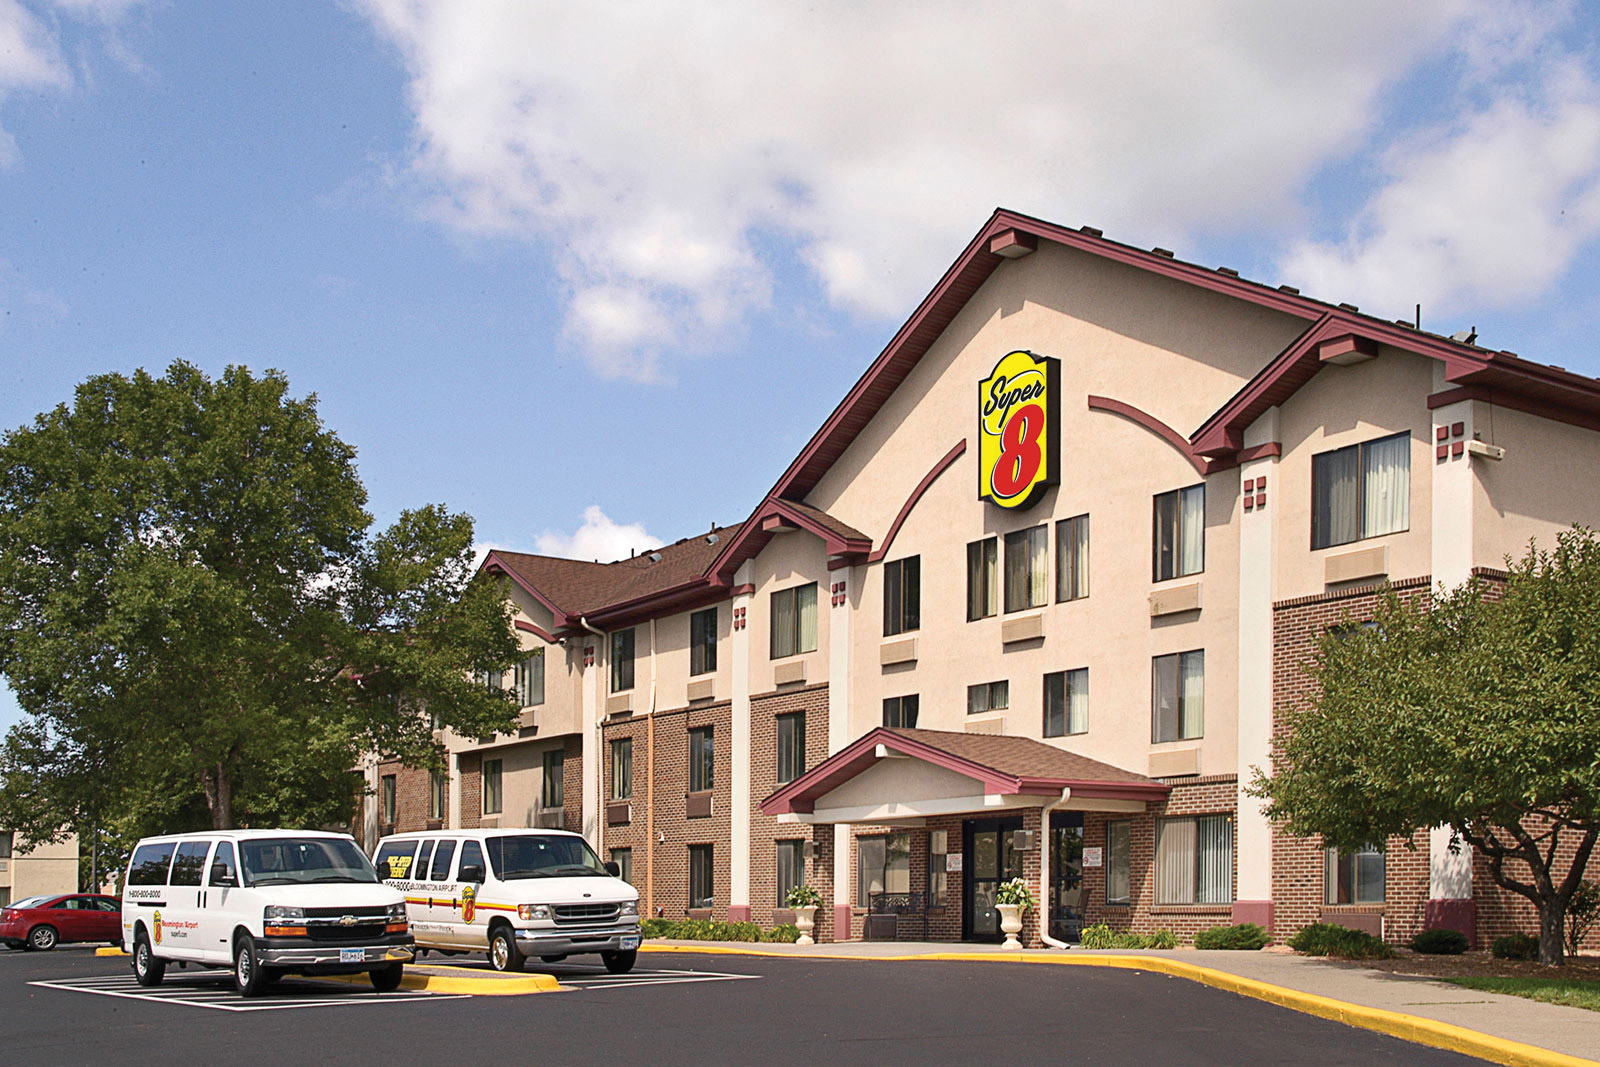 super 8 bloomington airport minnesota hotel near mall. Black Bedroom Furniture Sets. Home Design Ideas